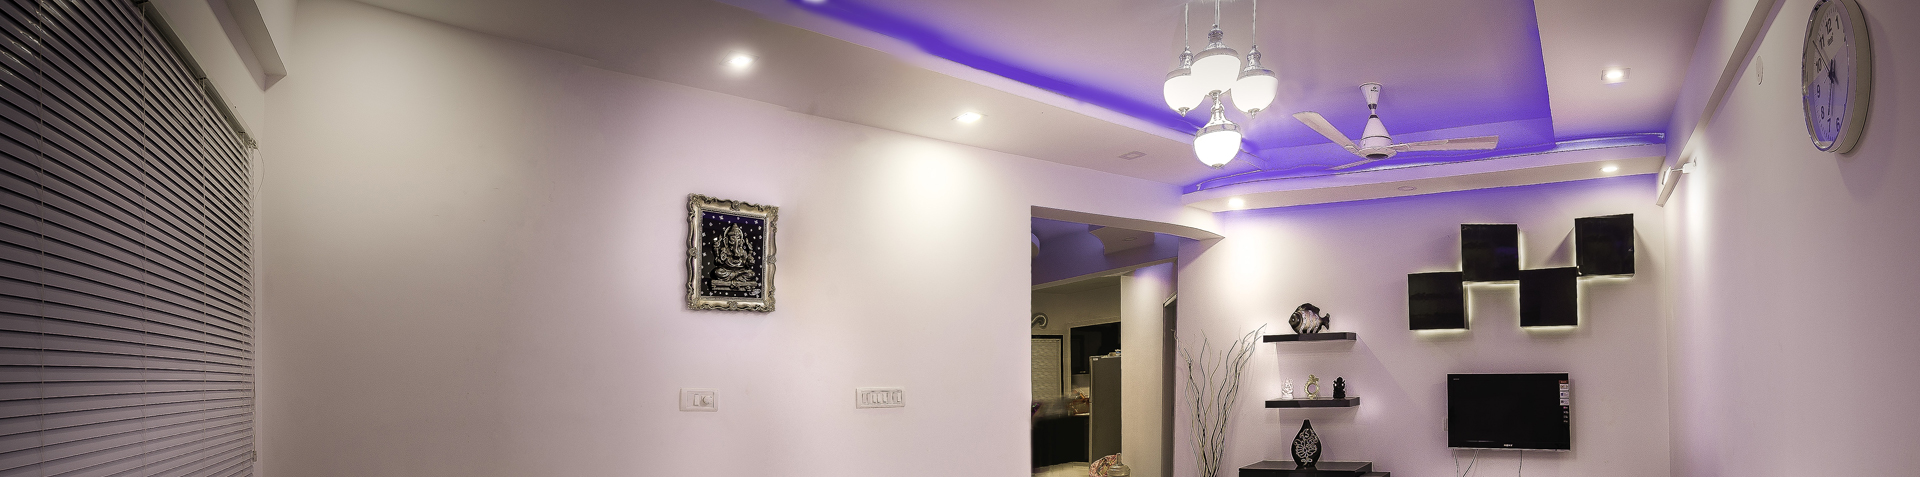 10 Indirect Lighting Ideas That Create A Stylish Home